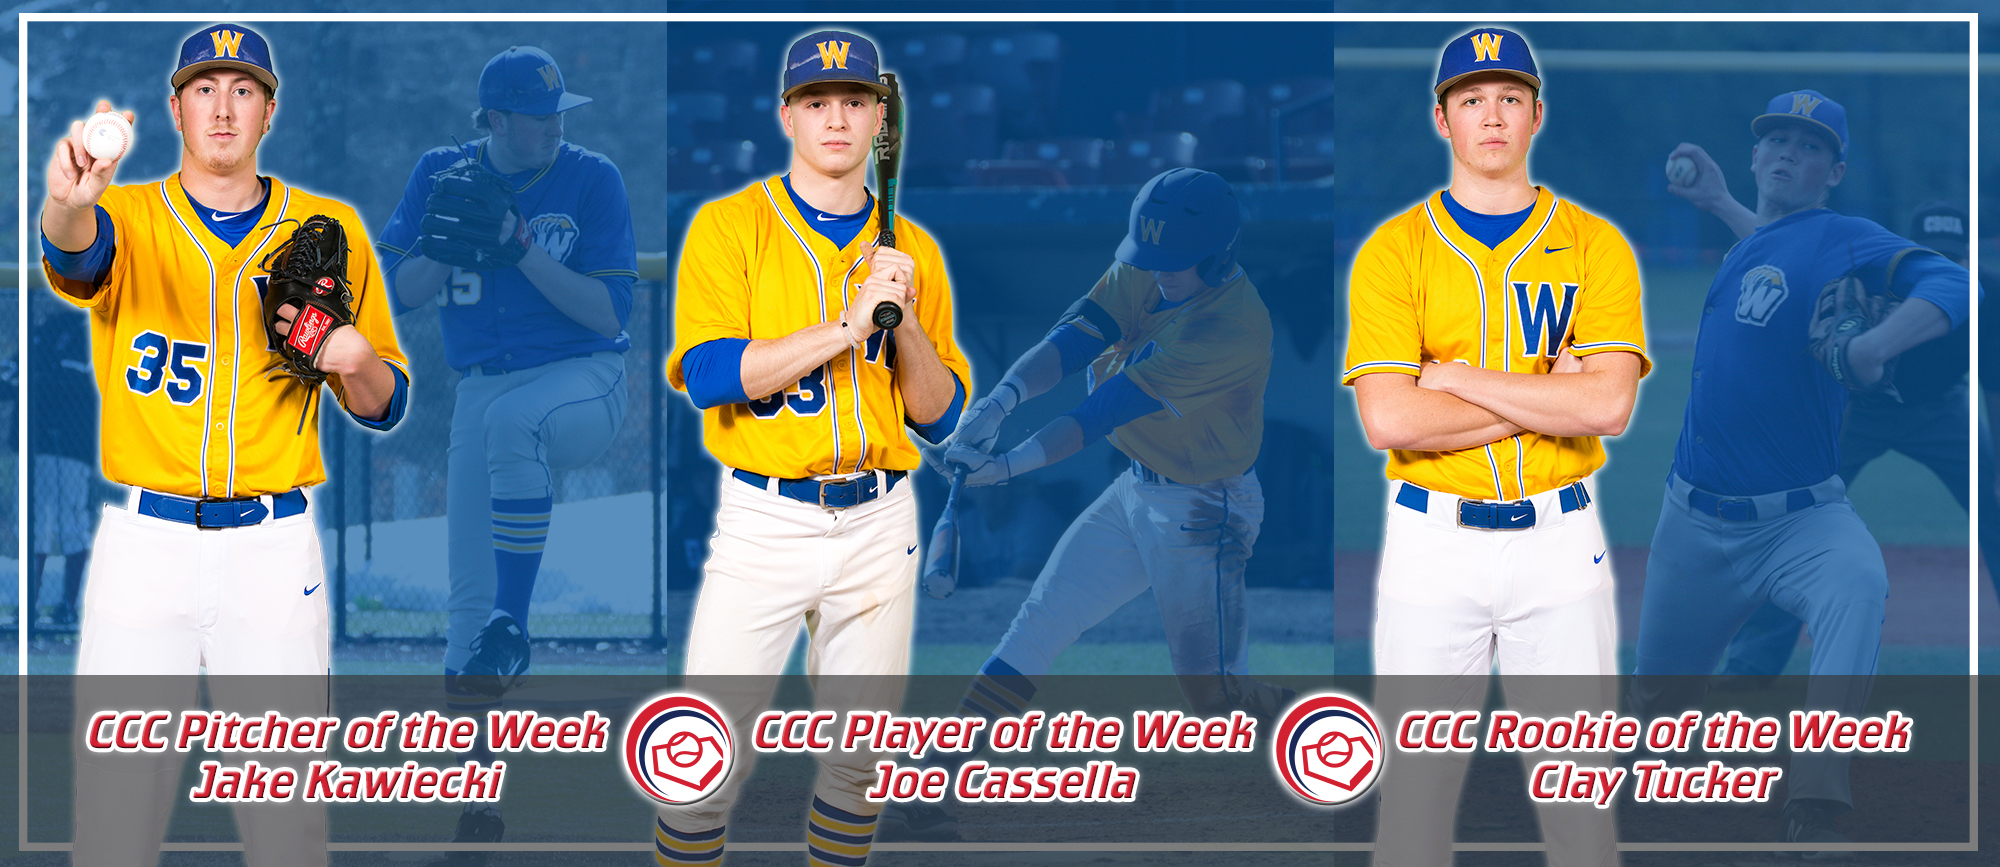 Golden Bears Sweep CCC Awards Following 6-0 Week in Florida